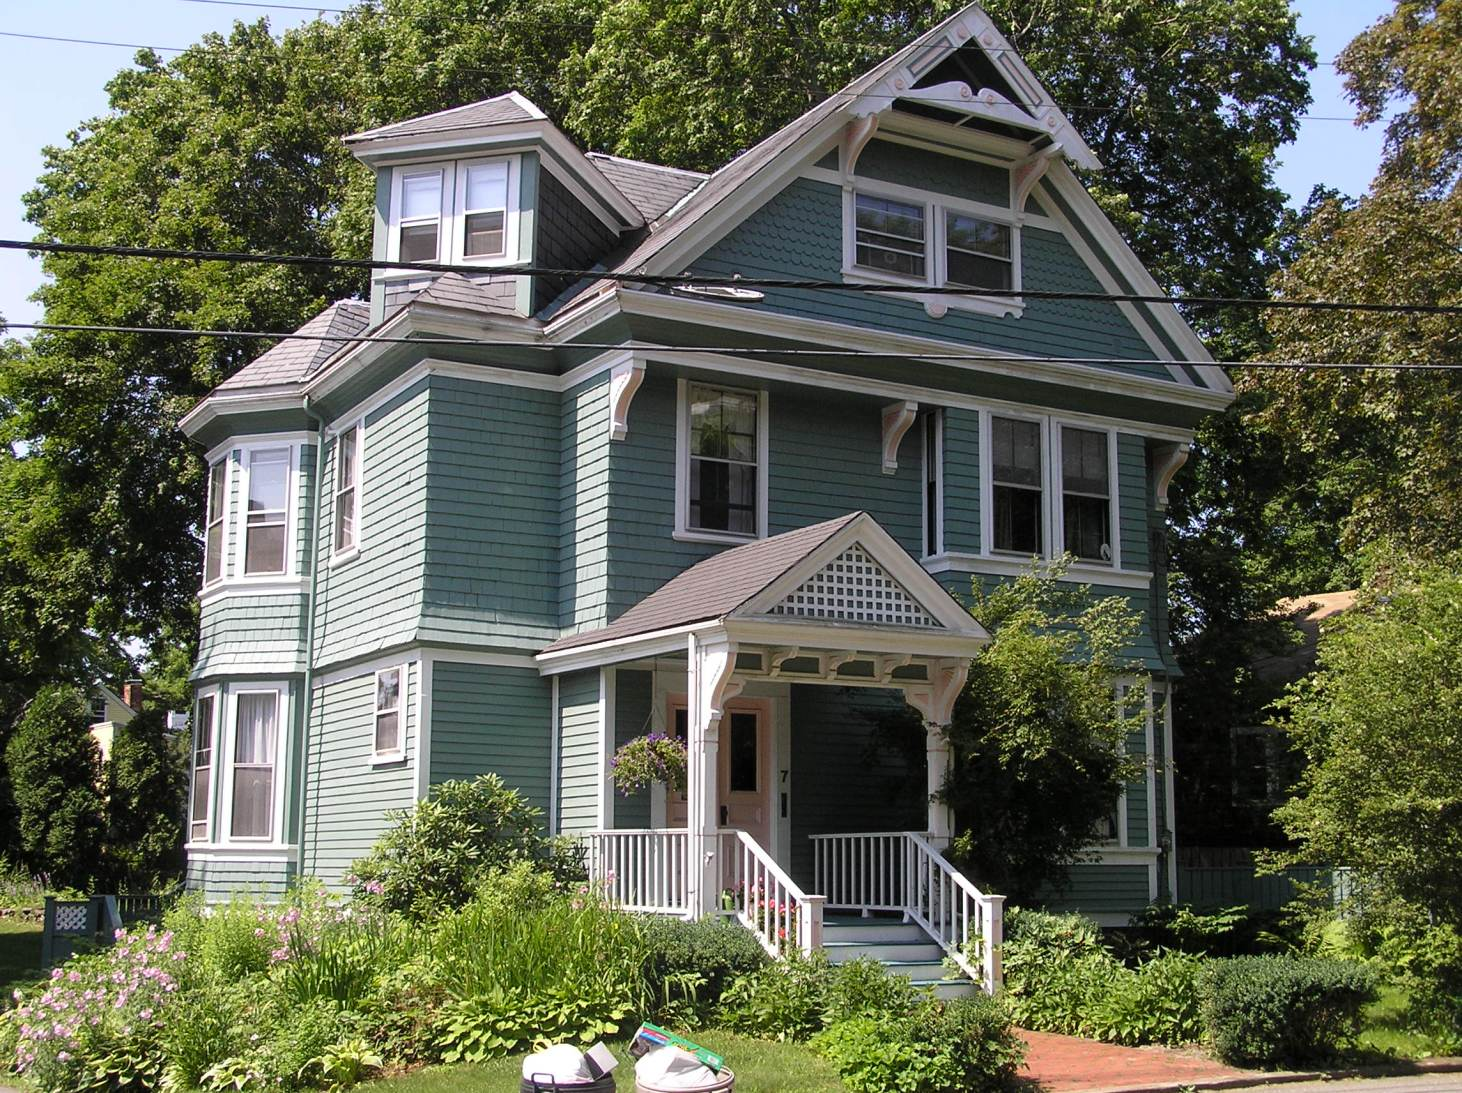 7 East Street, the Sadie Stockwell house (1888)